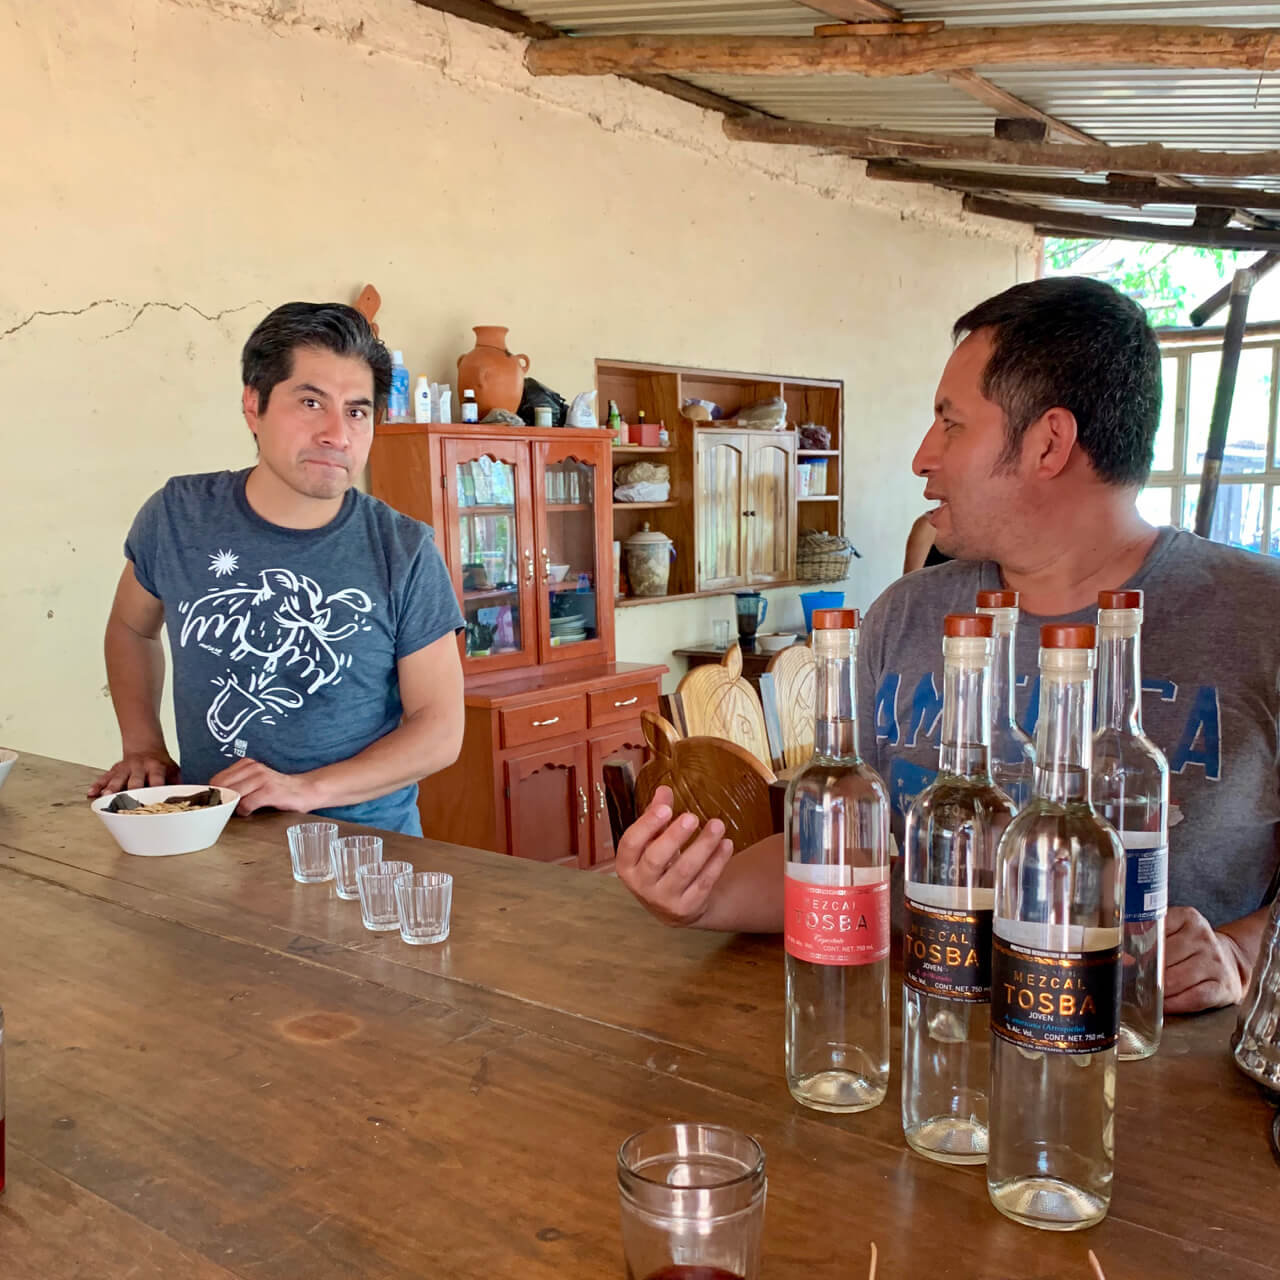 Elisandro and Edgar of Mezcal Tosba